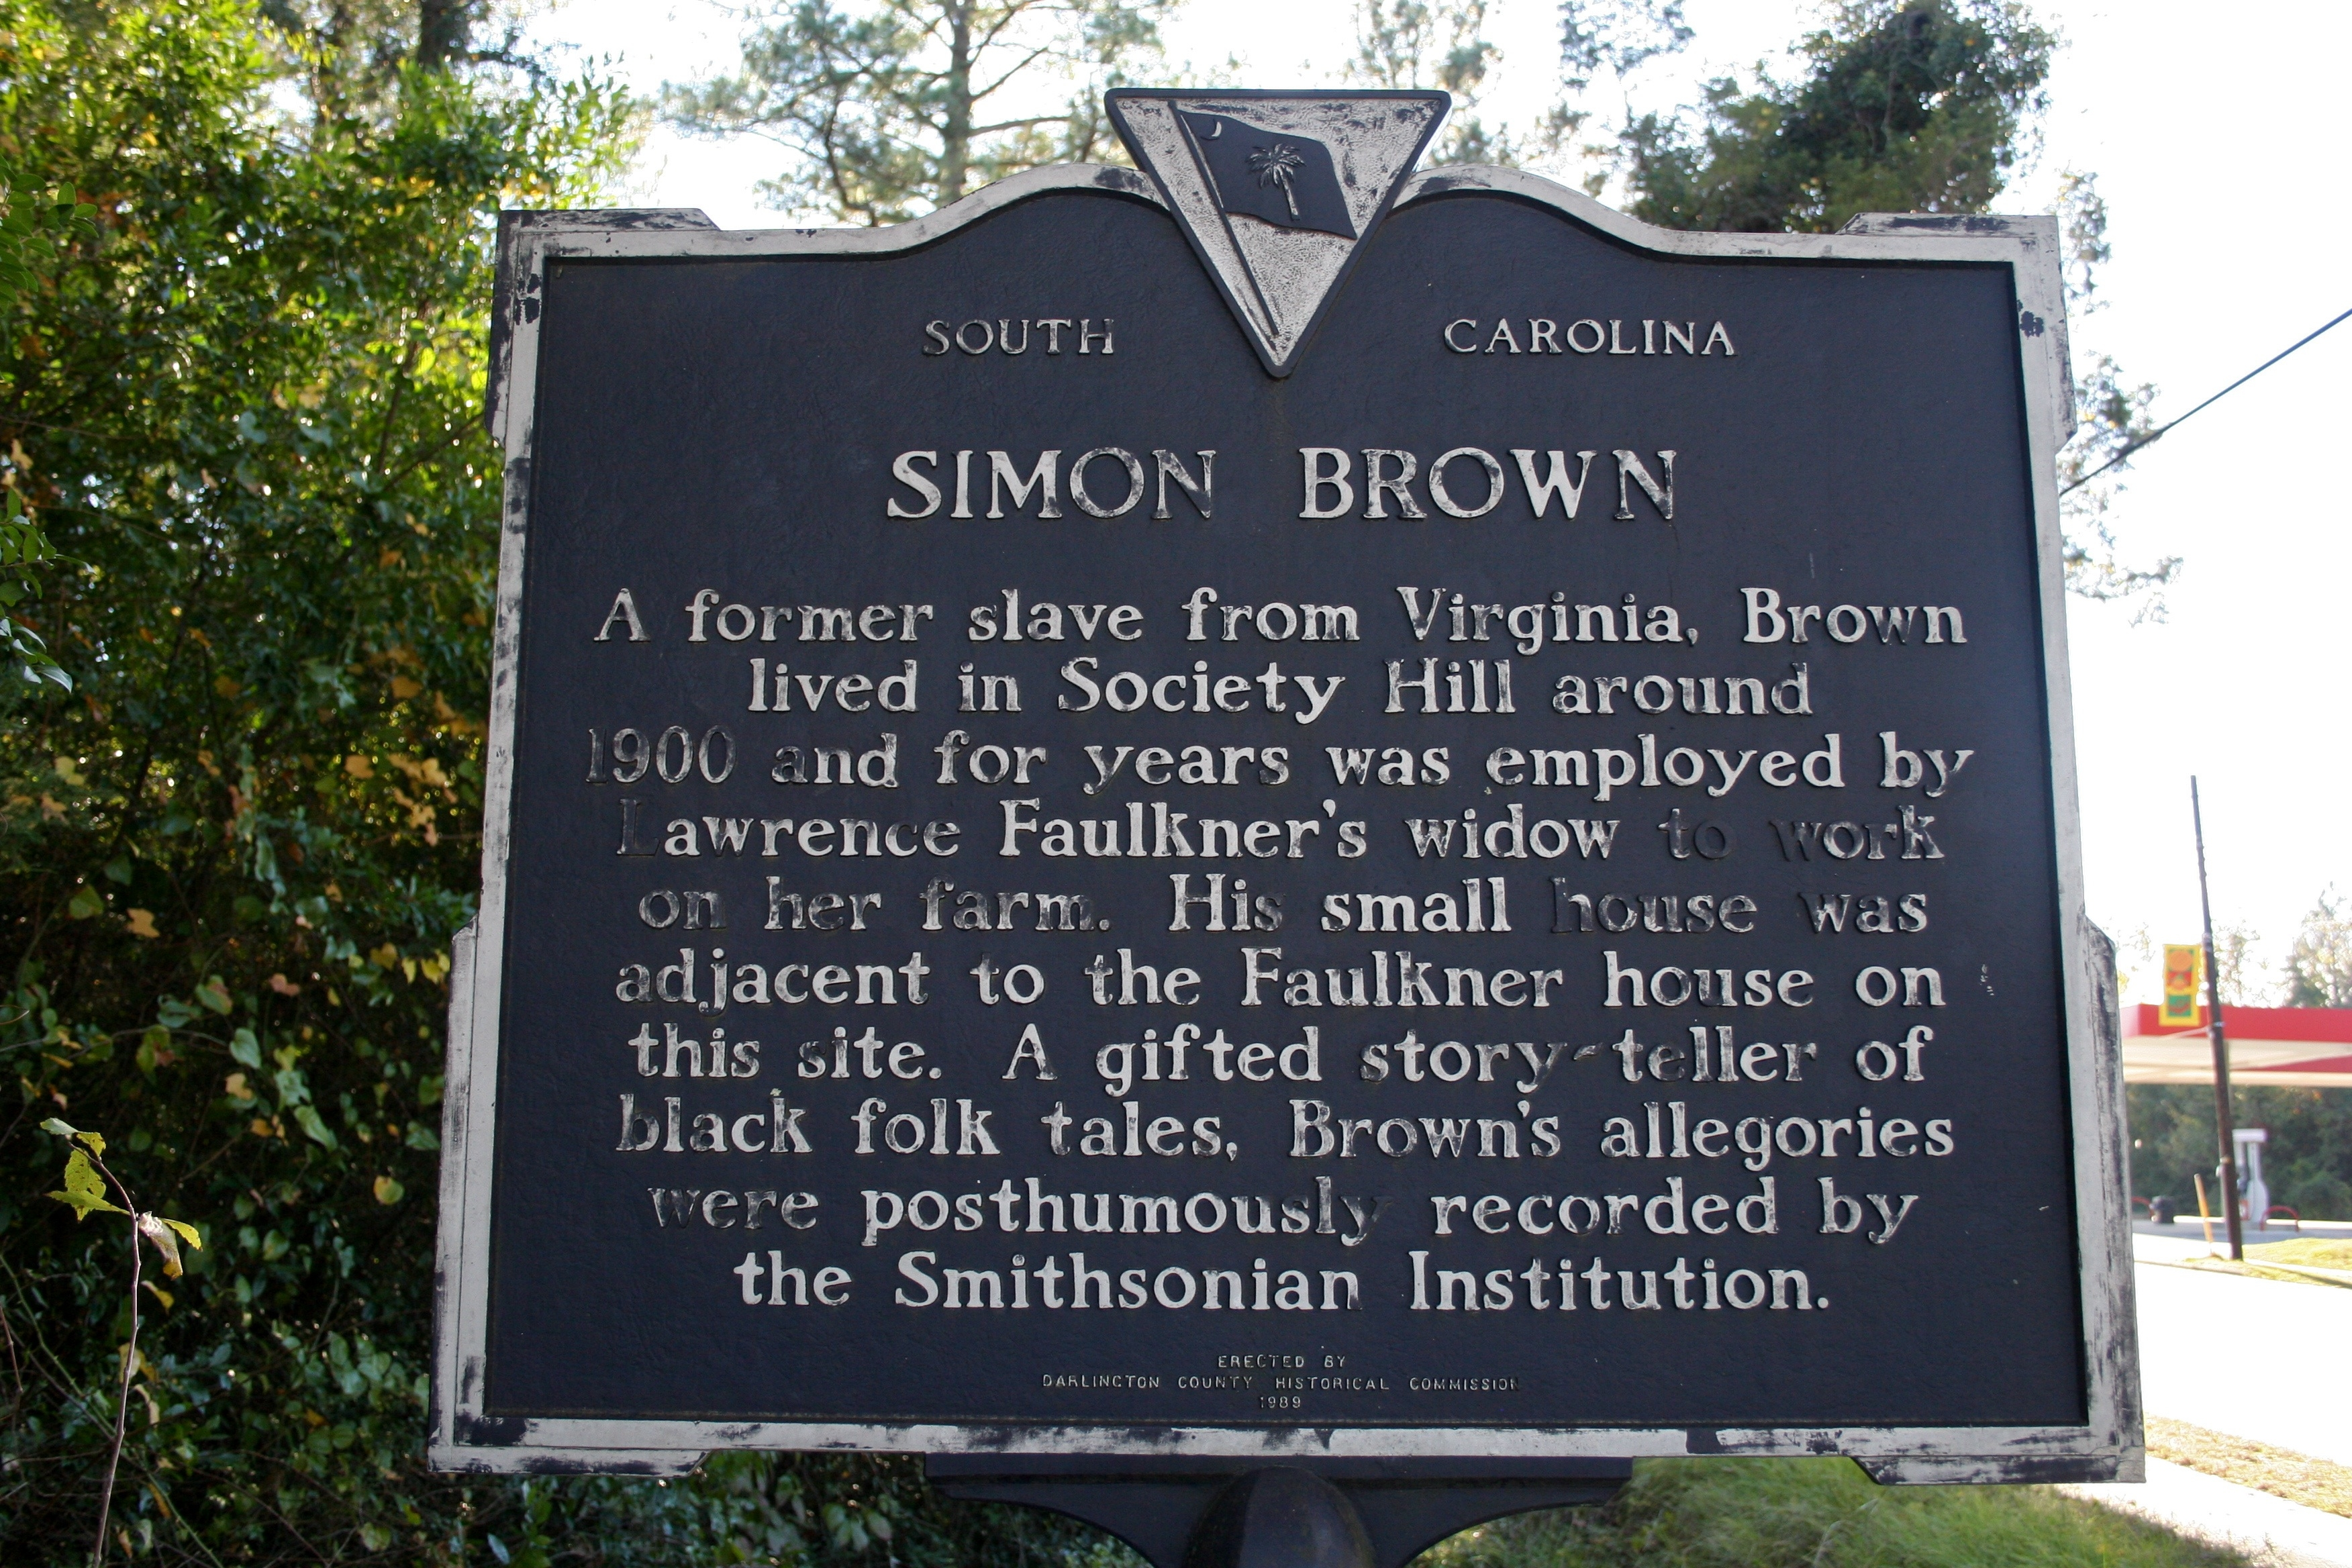 Lawrence Faulkner / Simon Brown Marker (reverse)